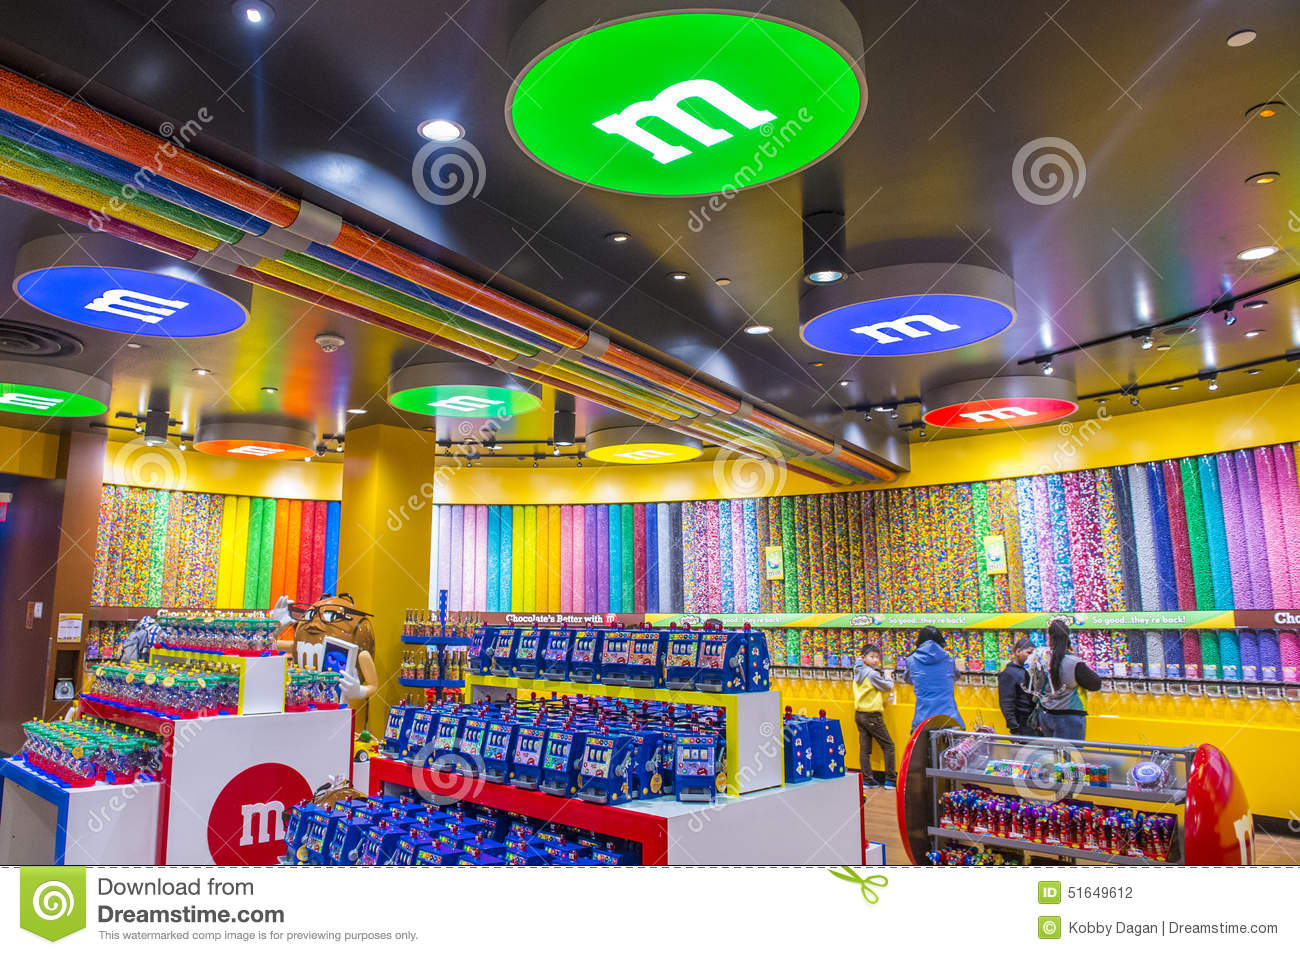 M®M'S® | Contact Us Got a question? Want to tell us what you think? We'd love to hear from you. Products Characters NASCAR Shop fb fb tw yt pi ig. Contact Us. Our product locator can help you find a store in the U.S. that carries your favorite M&M'S.